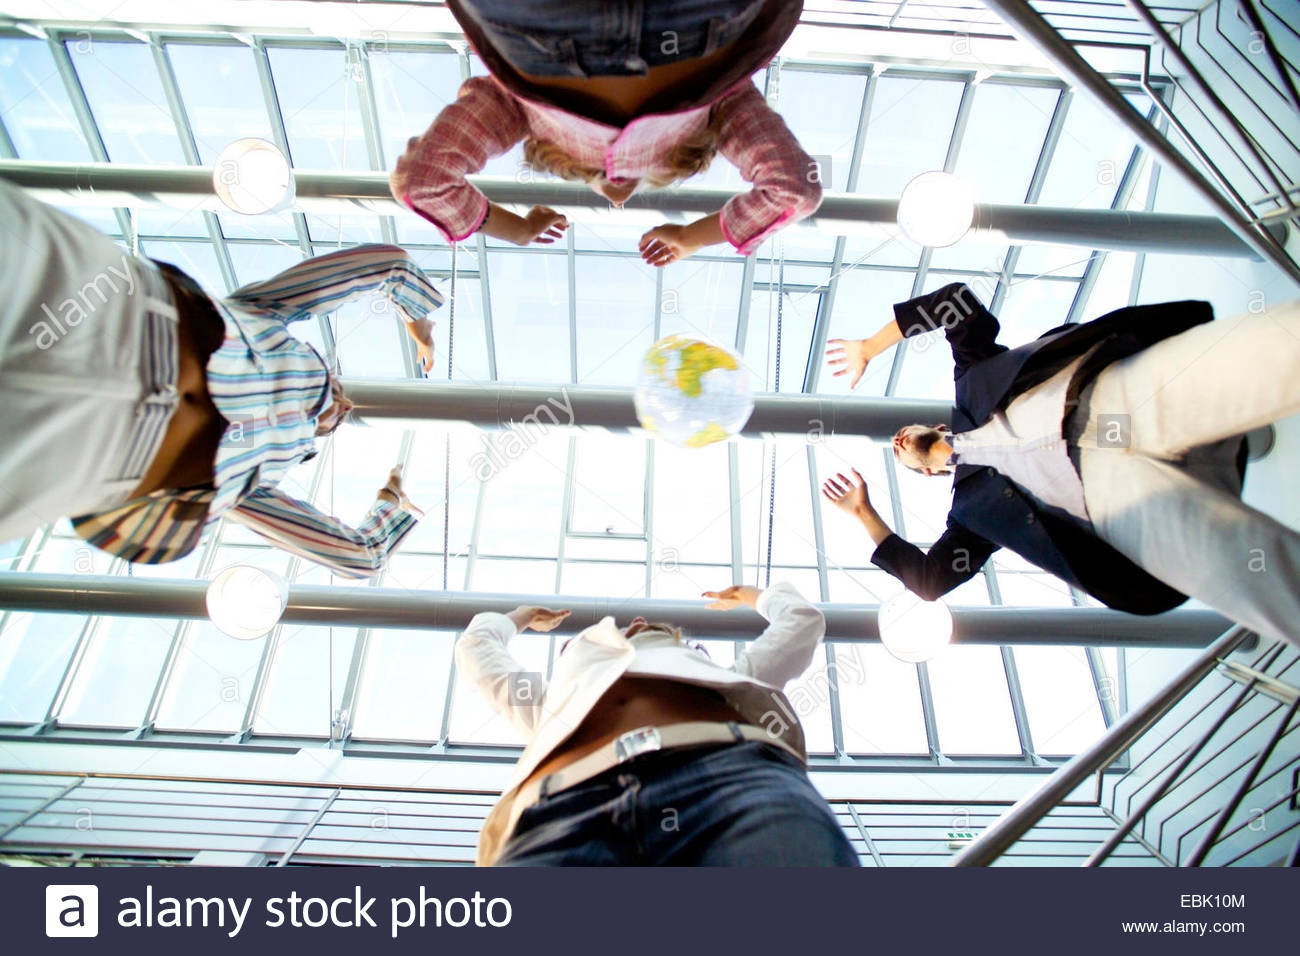 office workers playing with a ball at the office building - Stock Image